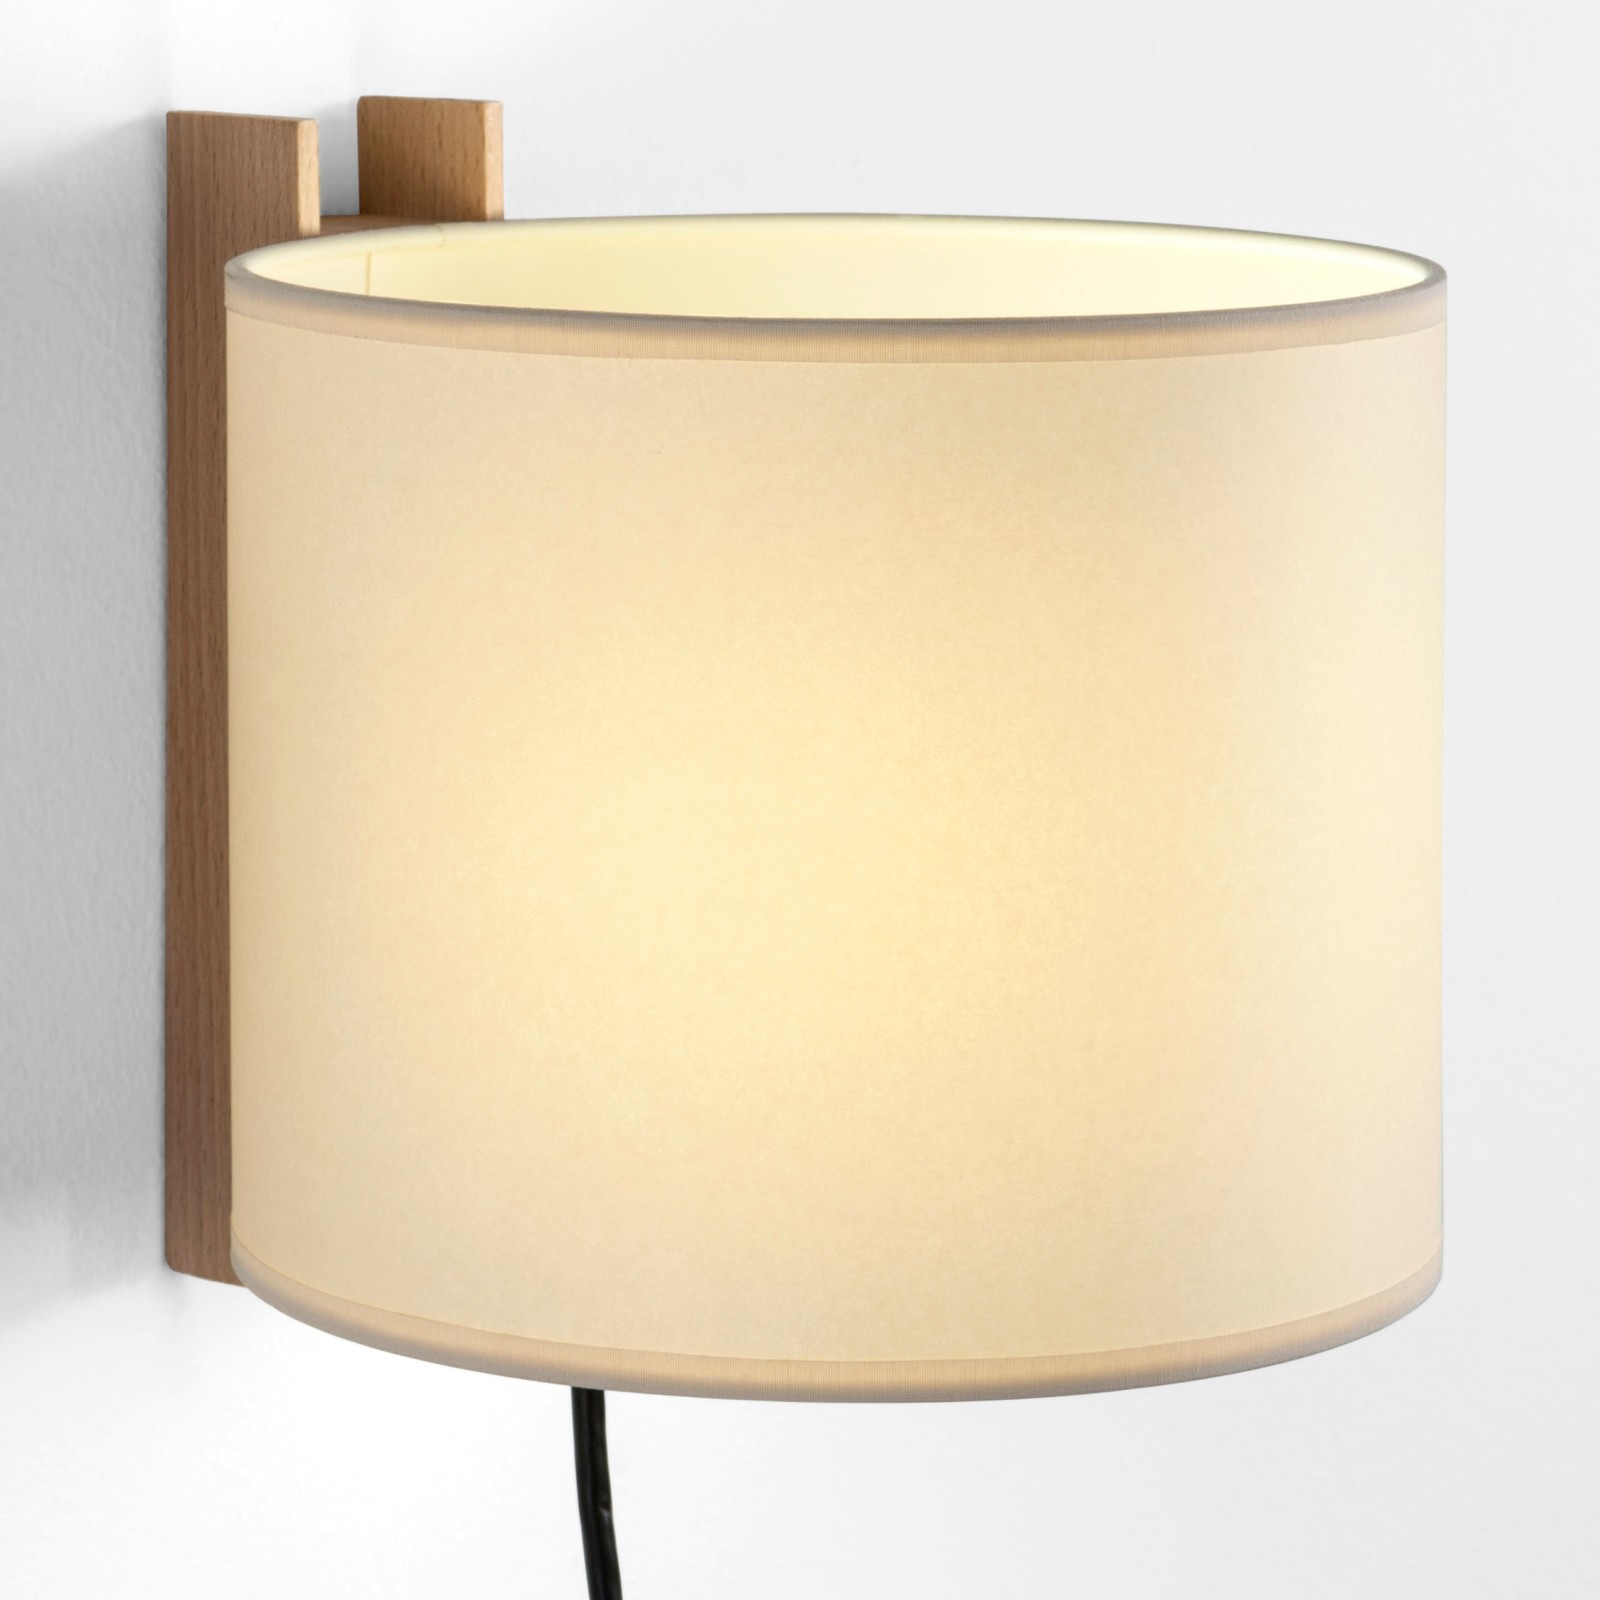 TMM Corto Wall Light Beige, With plug